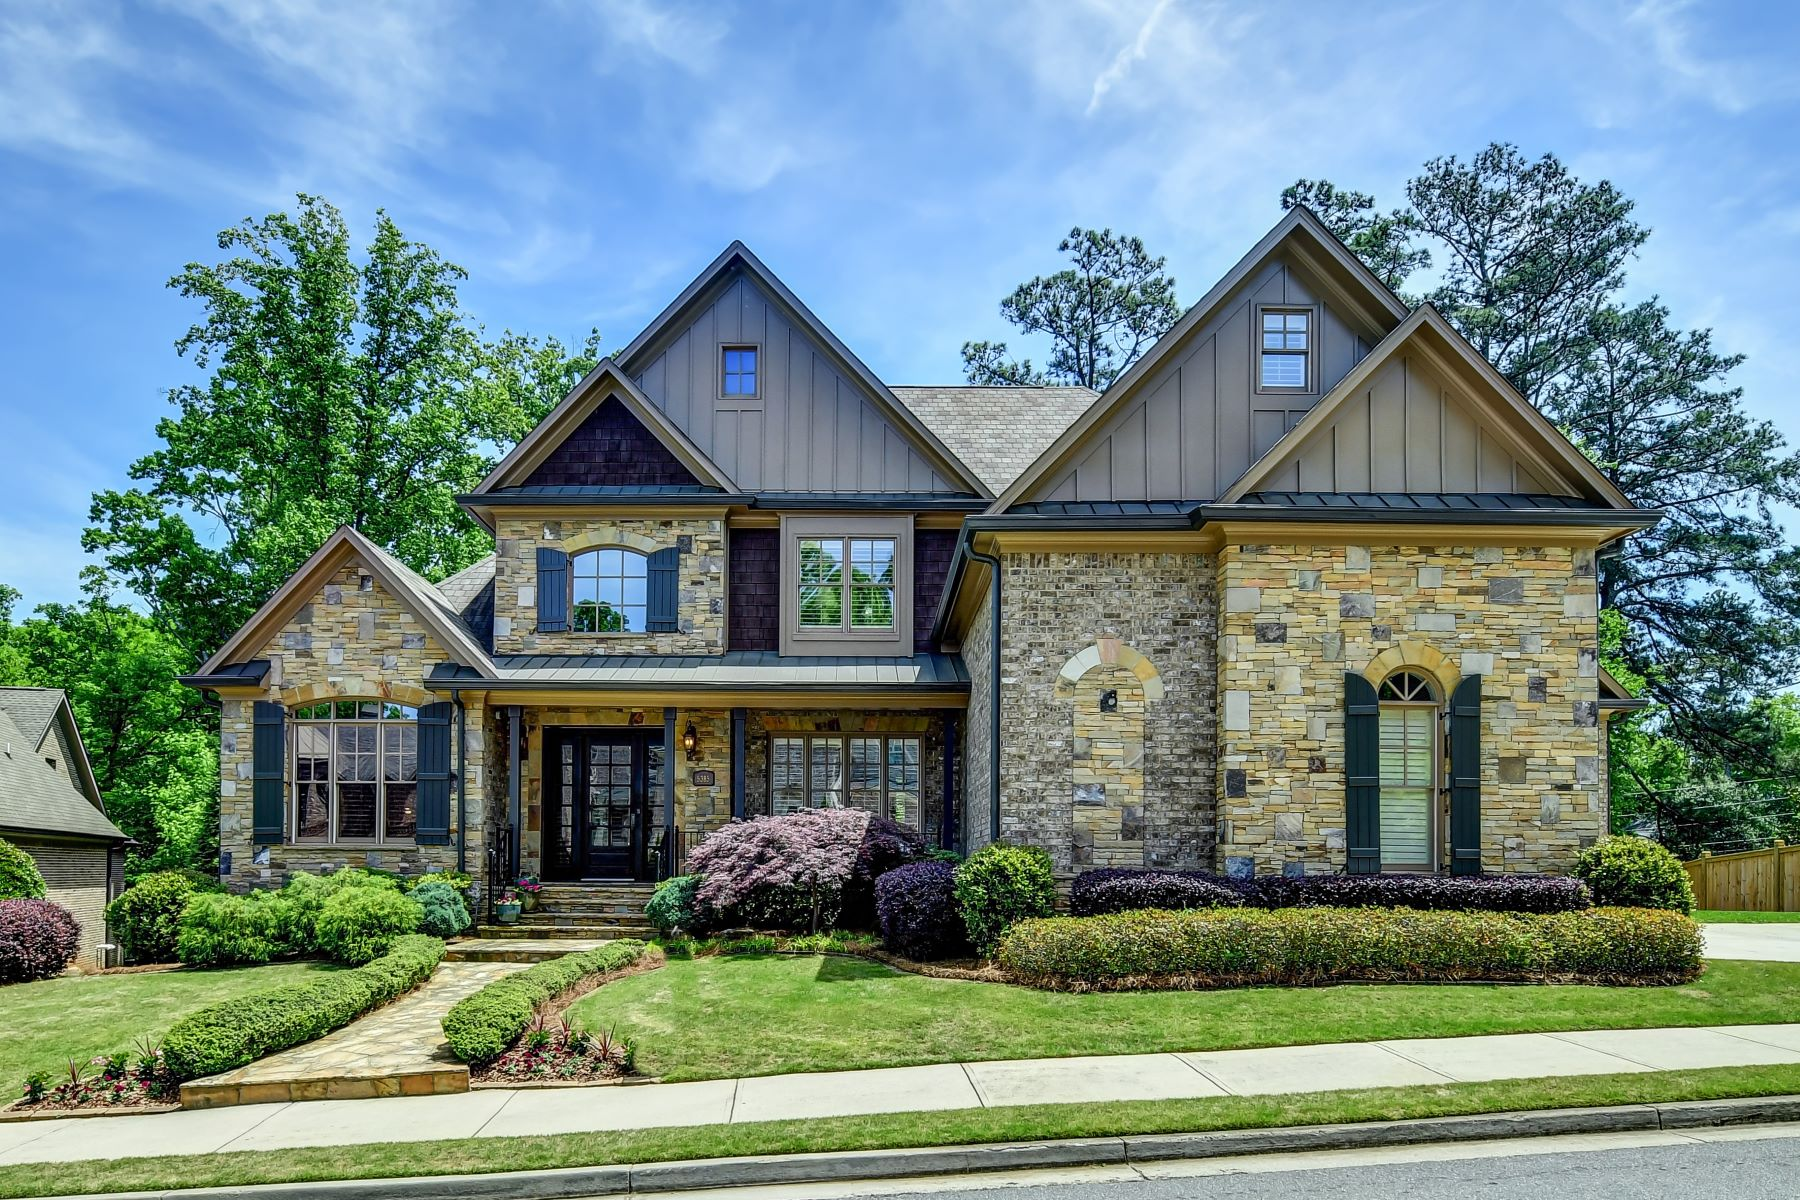 Single Family Home for Sale at Classic Brick and Stone Beauty in a Gated Community and Quiet Cul-de-sac 5385 High Point Manor Atlanta, Georgia 30342 United States